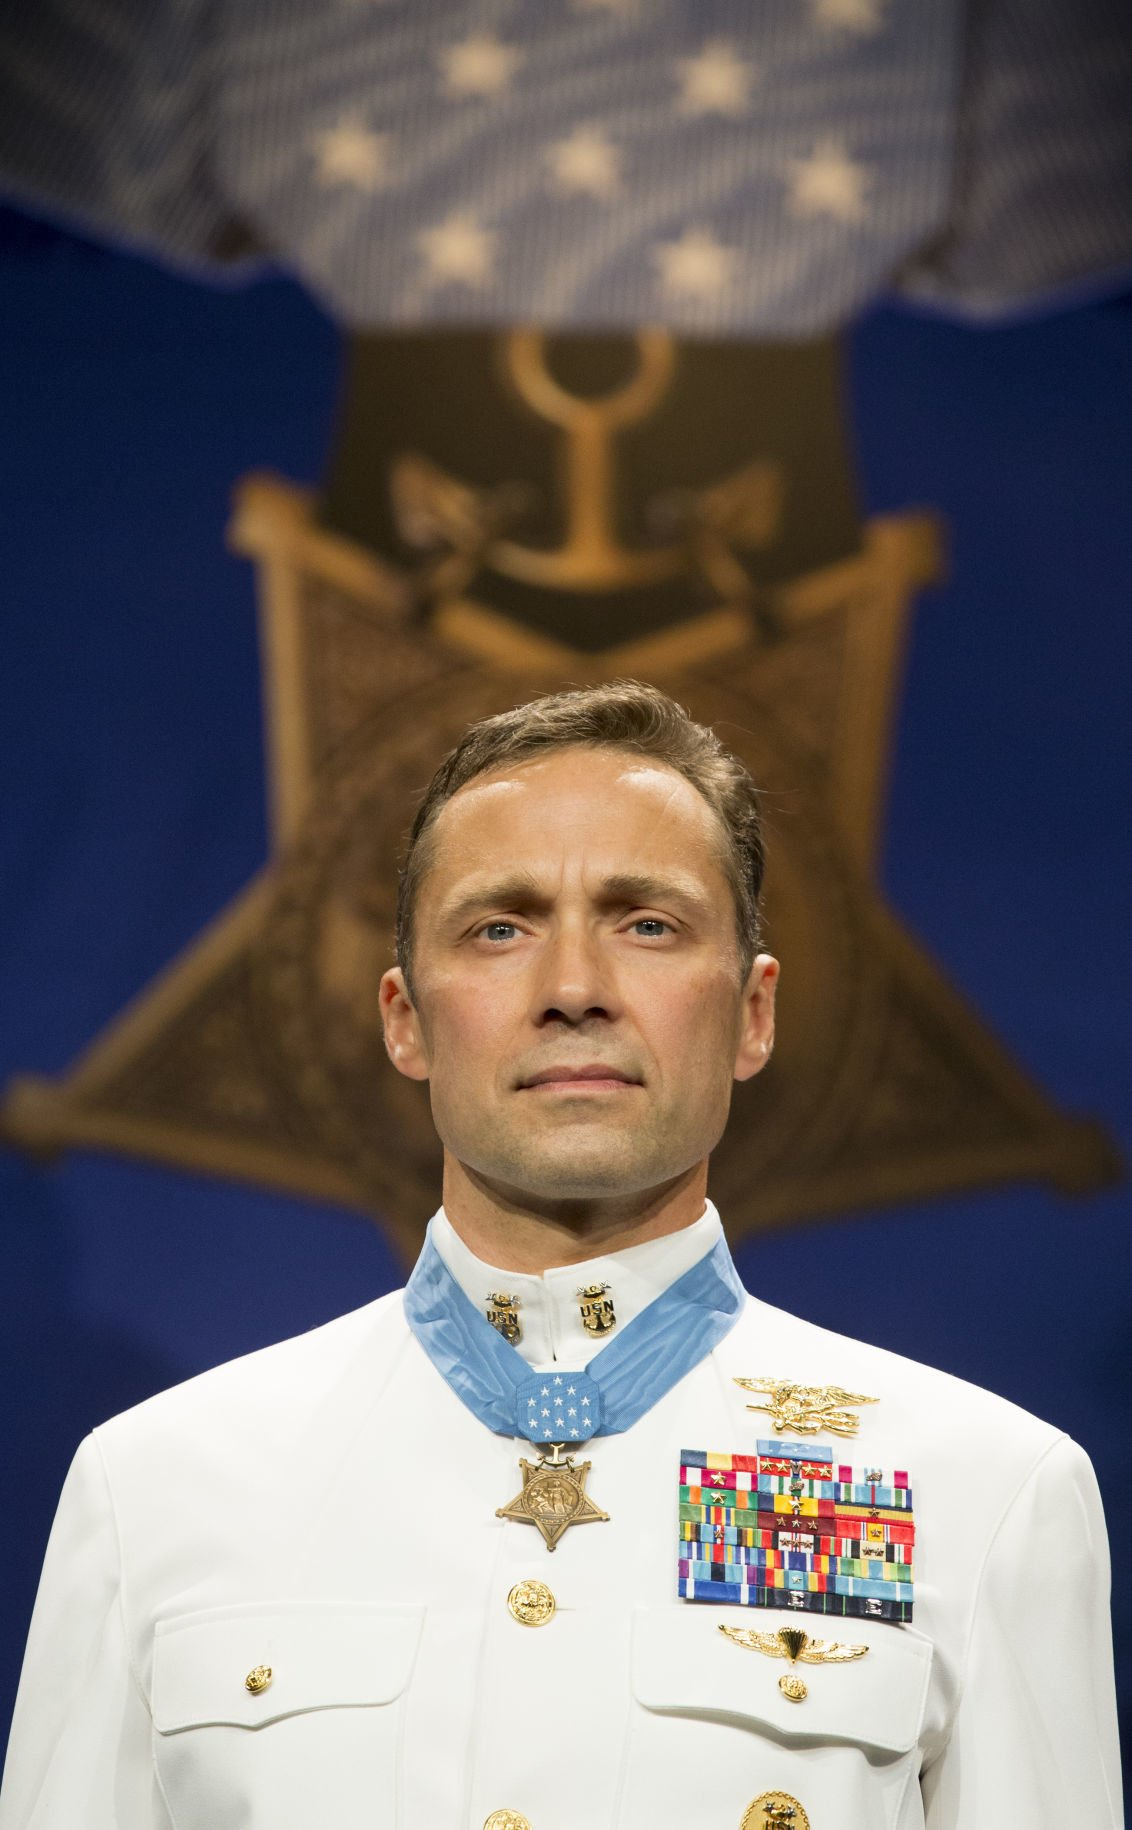 Medal of Honor Recipient Master Chief Britt Slabinski Inducted into Pentagon Hall of Heroes